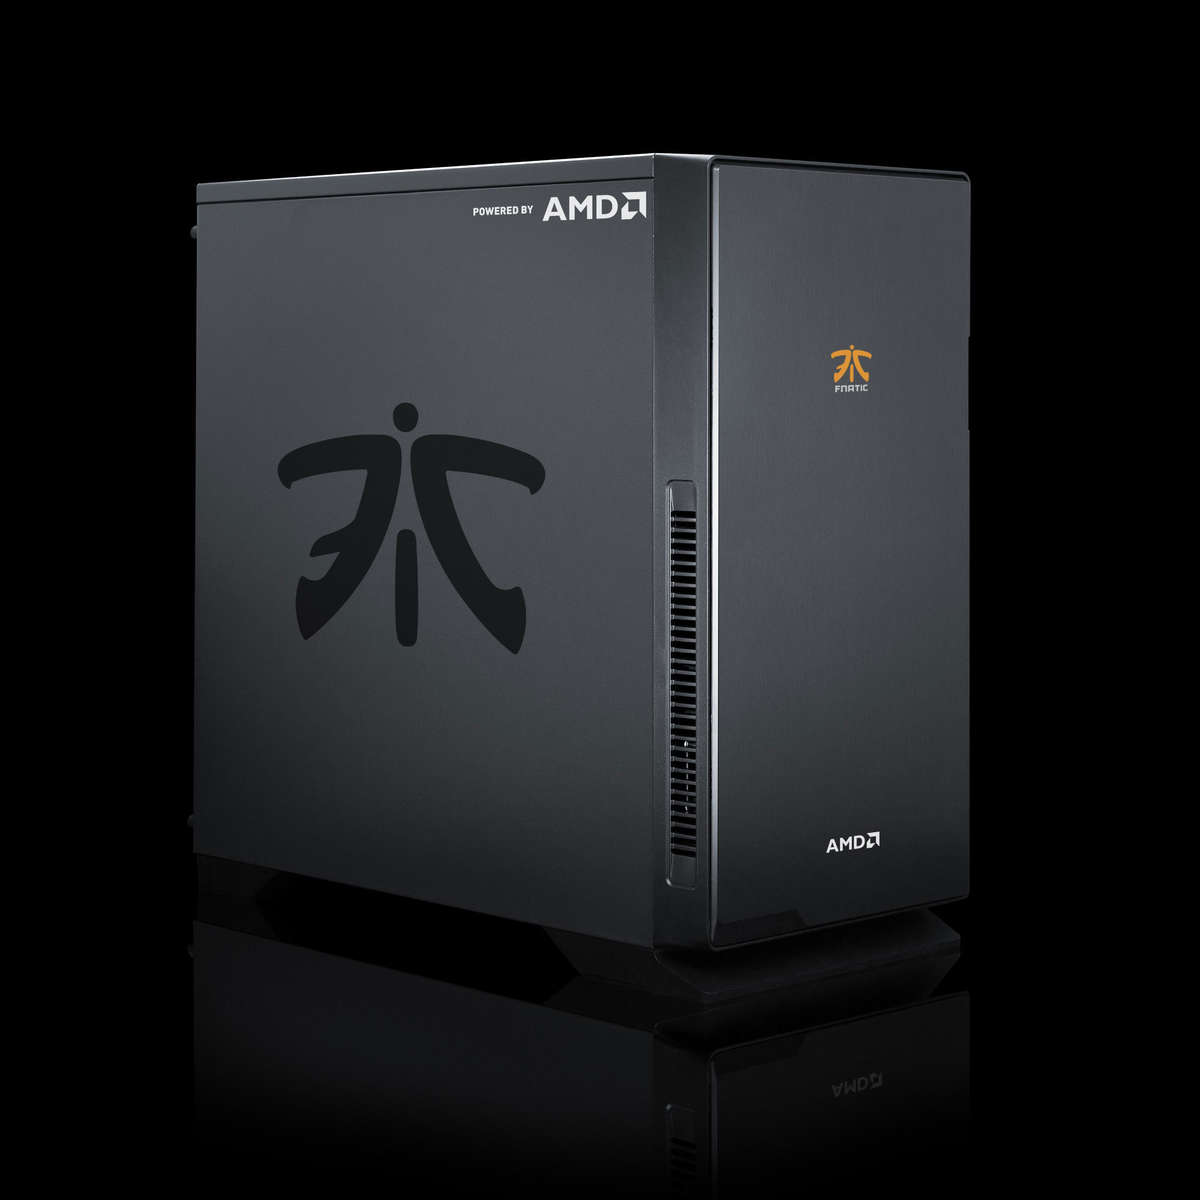 Chillblast Fnatic Official APU Gaming PC